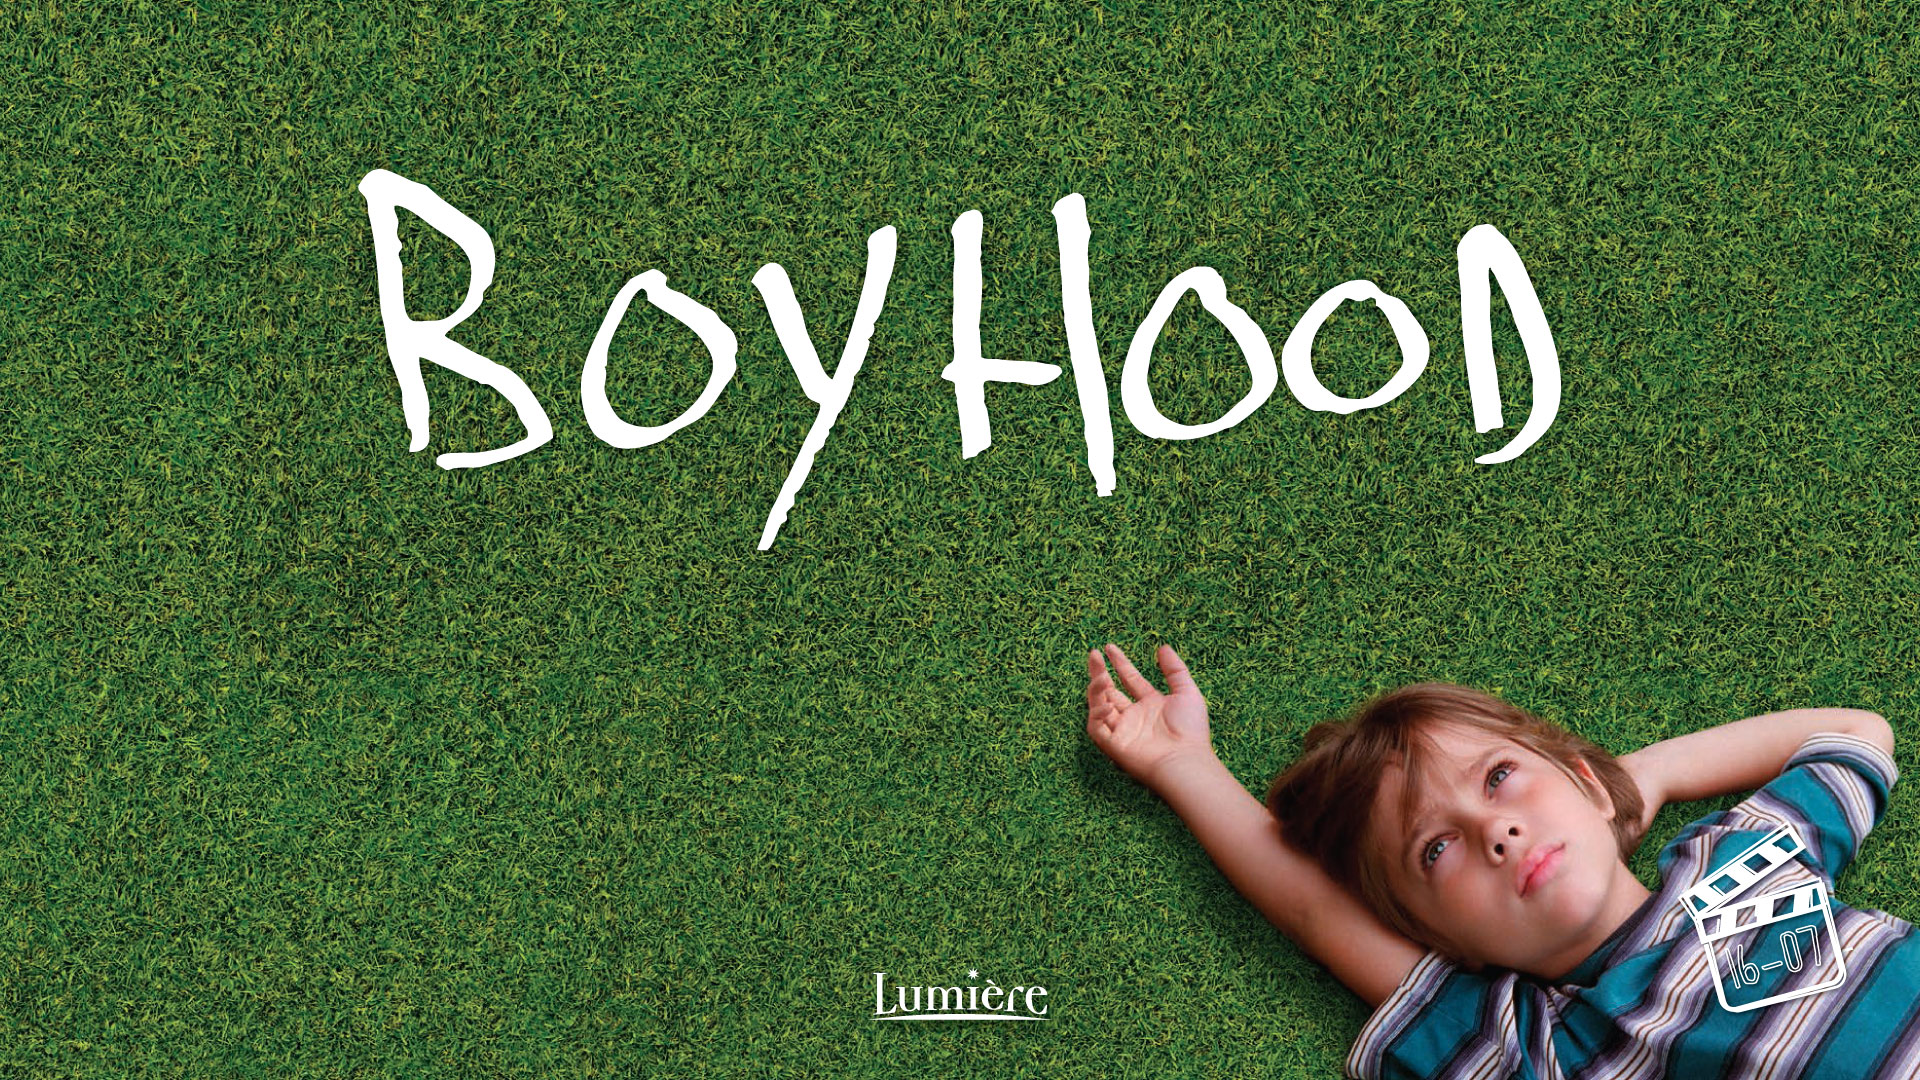 Boyhood is overrated like gravity